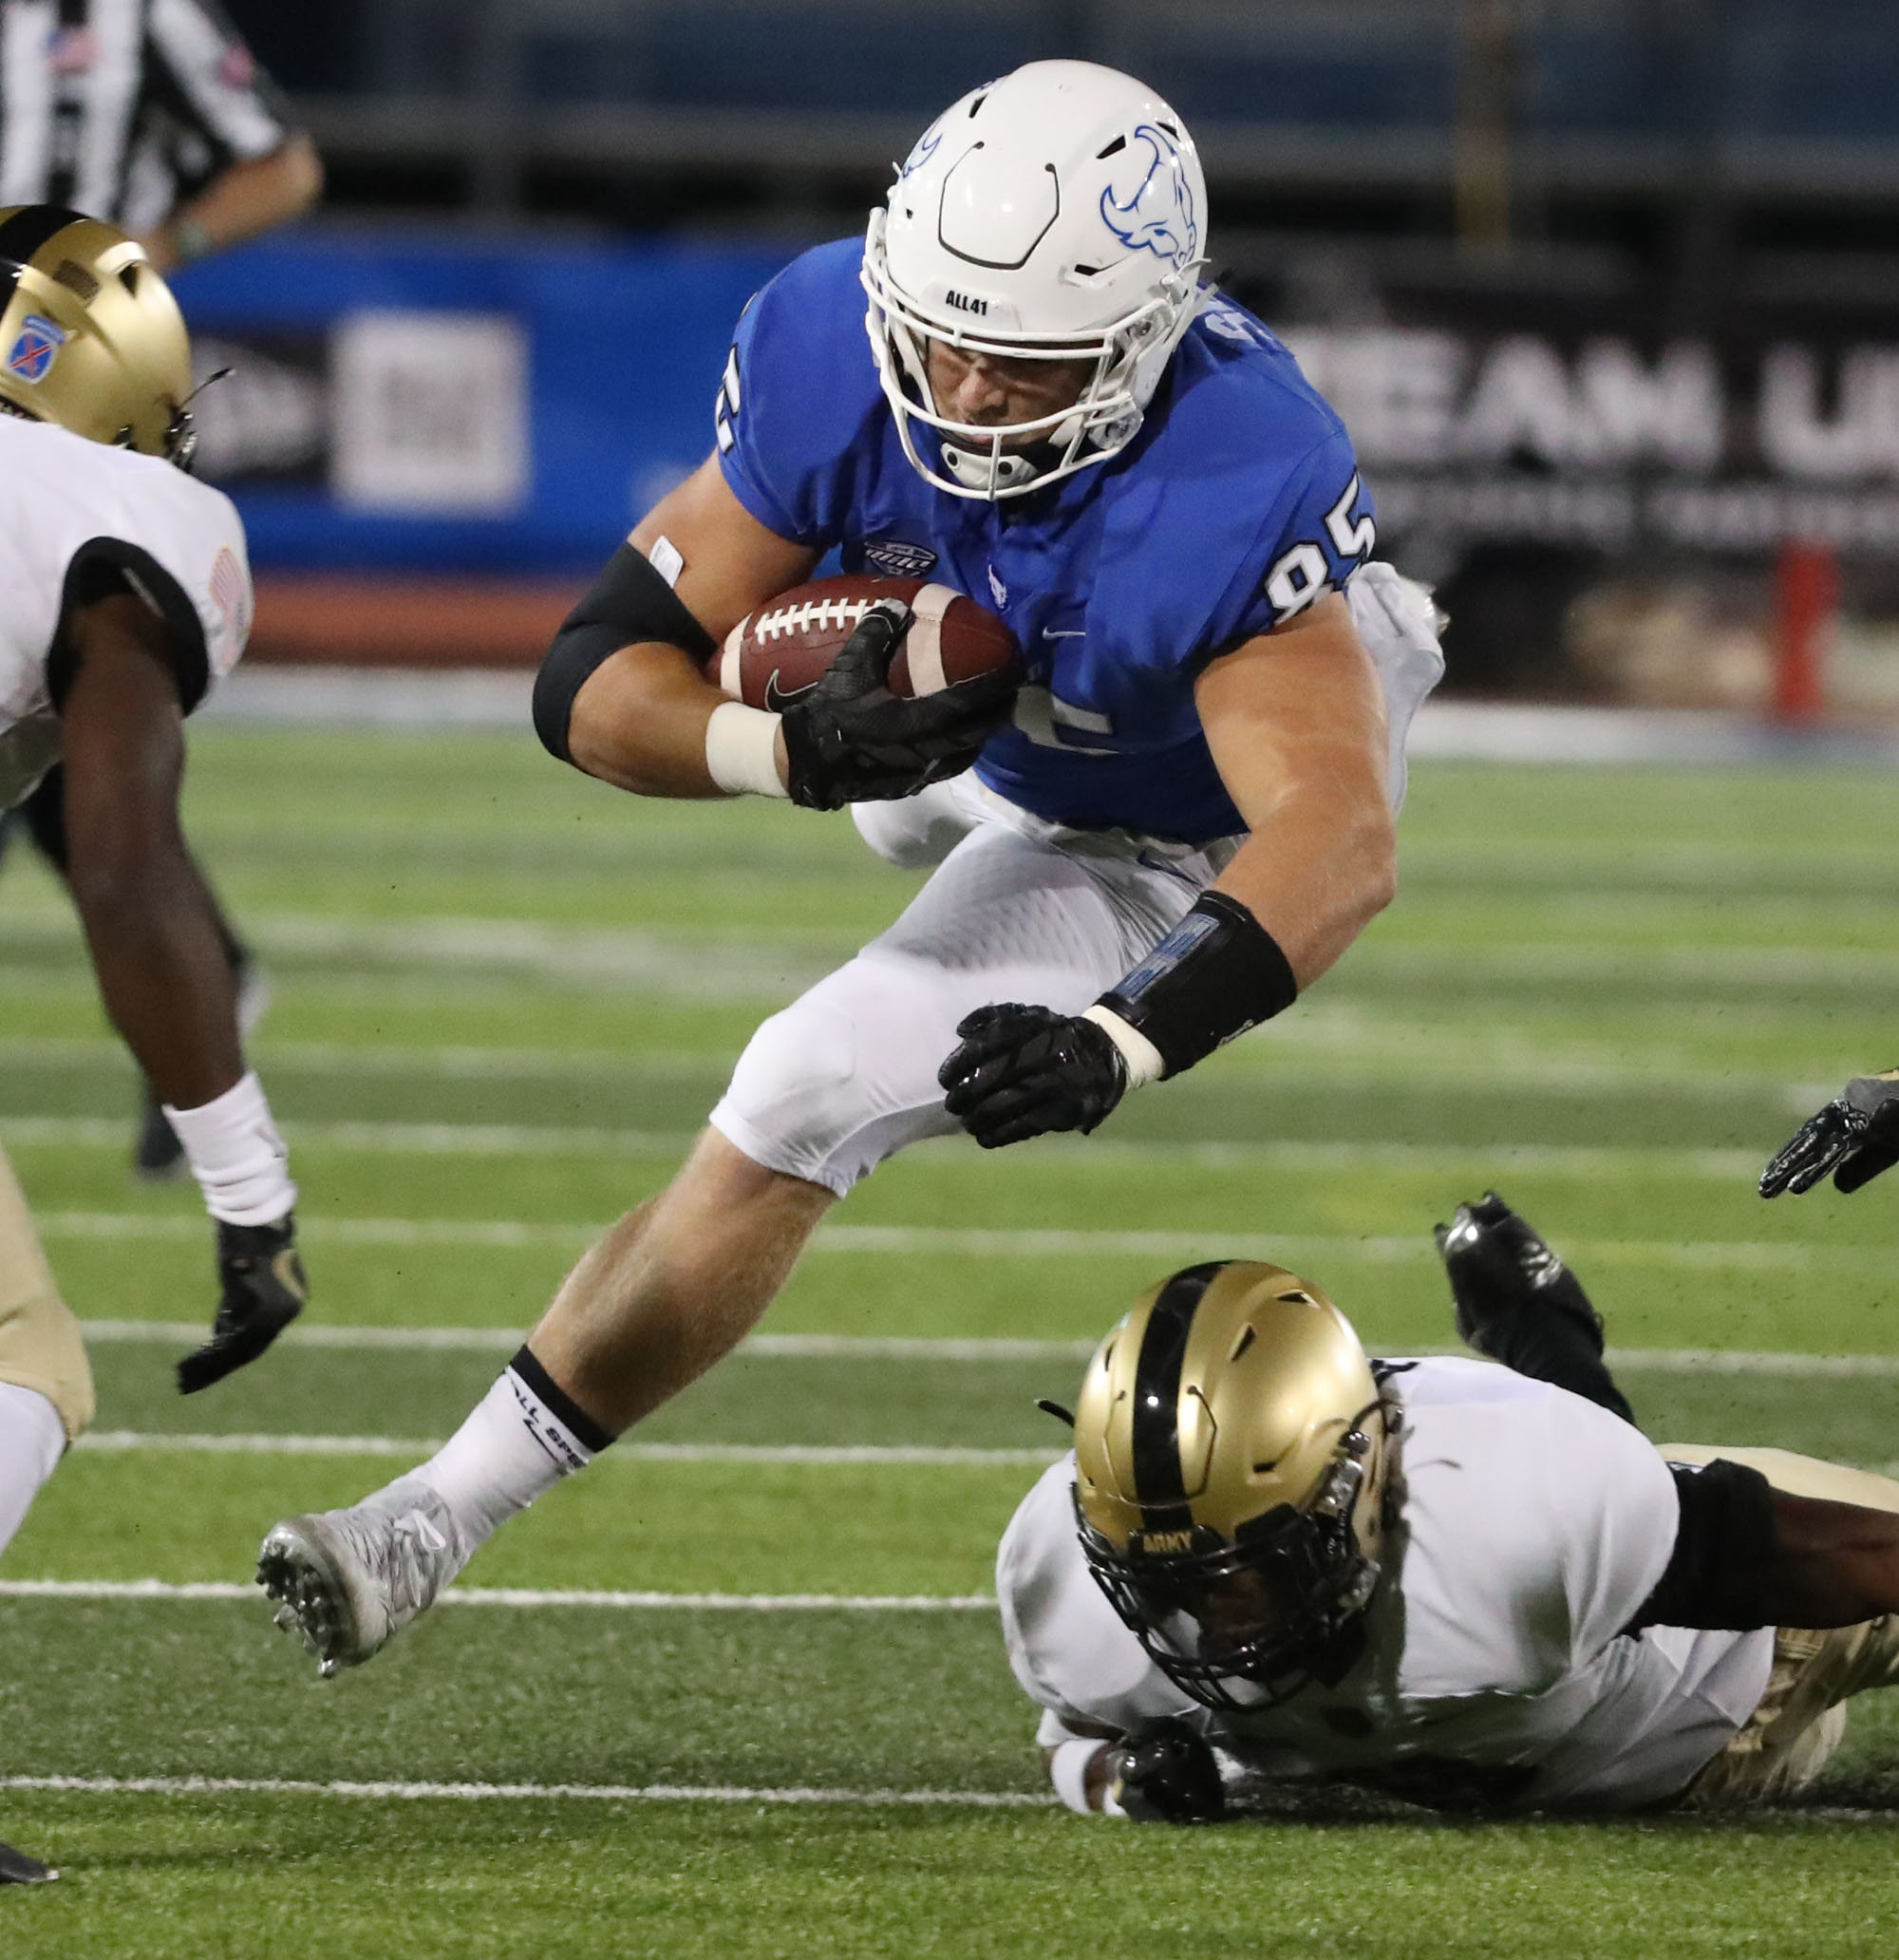 UB senior tight end Mason Schreck caught a 75-yard touchdown pass from Tyree Jackson in the second quarter. (James P. McCoy/ Buffalo News file photo)